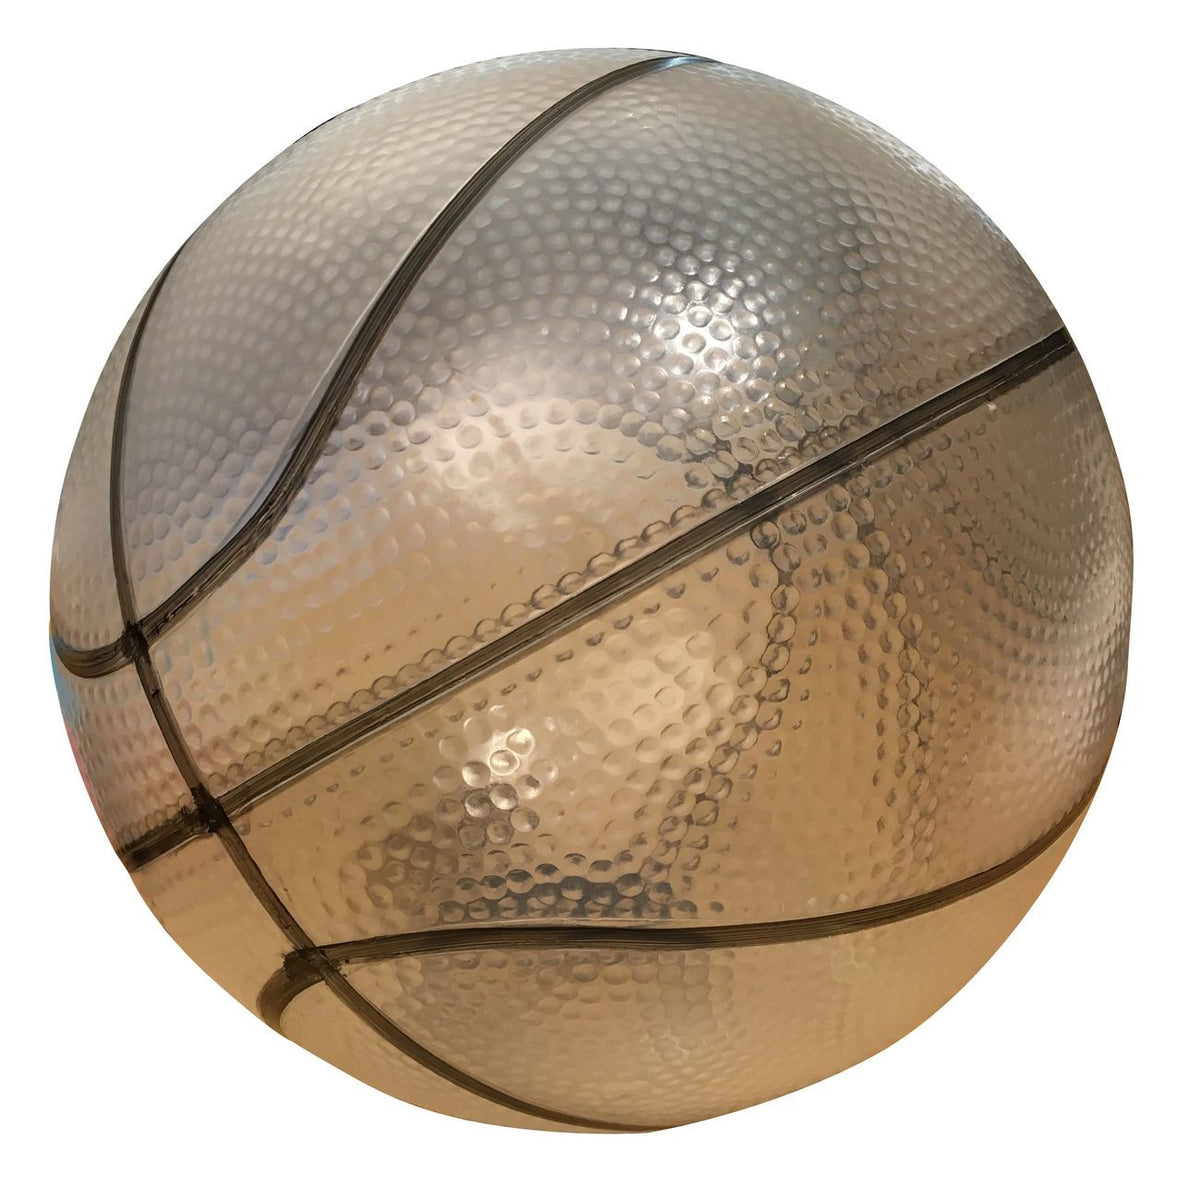 PVC BASKETBALL | Toyworld Frankston | Toyworld Frankston